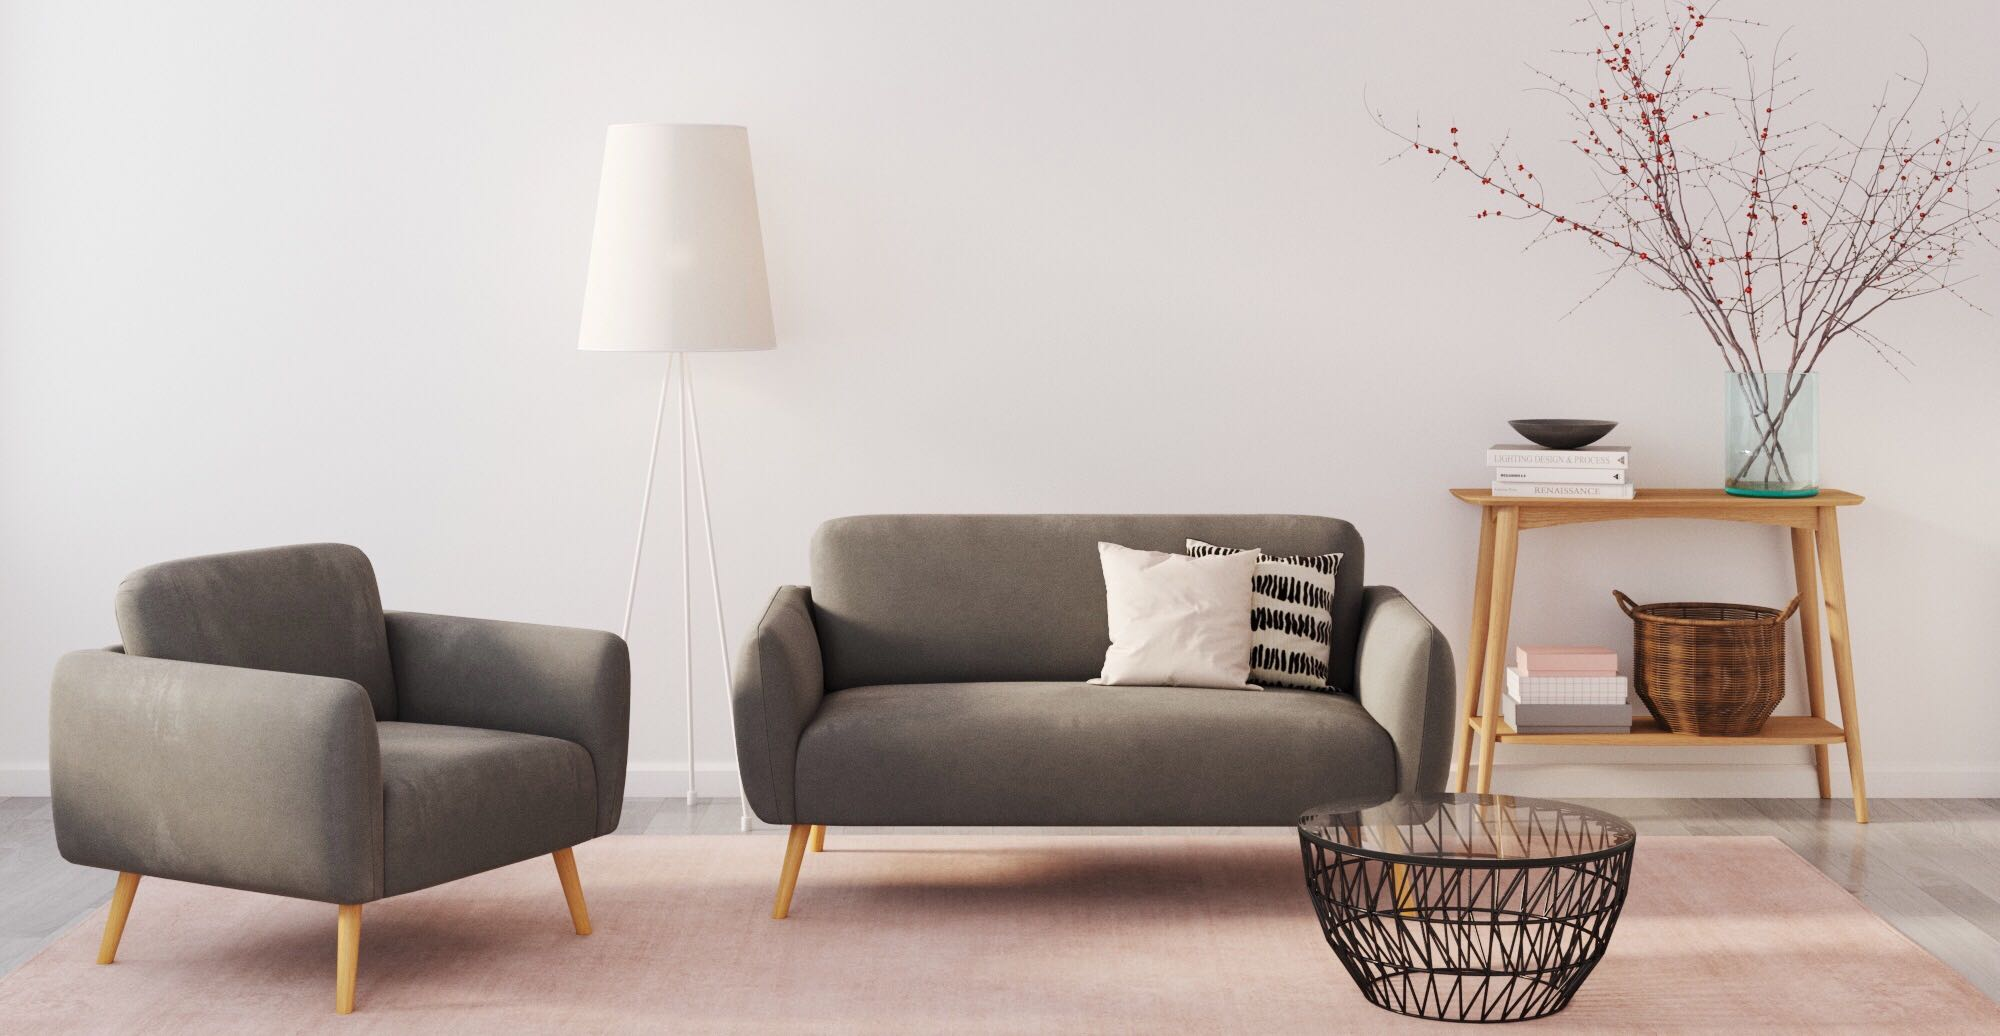 Brosa Mitch 2 Seater Sofa styled in Scandinavian living room